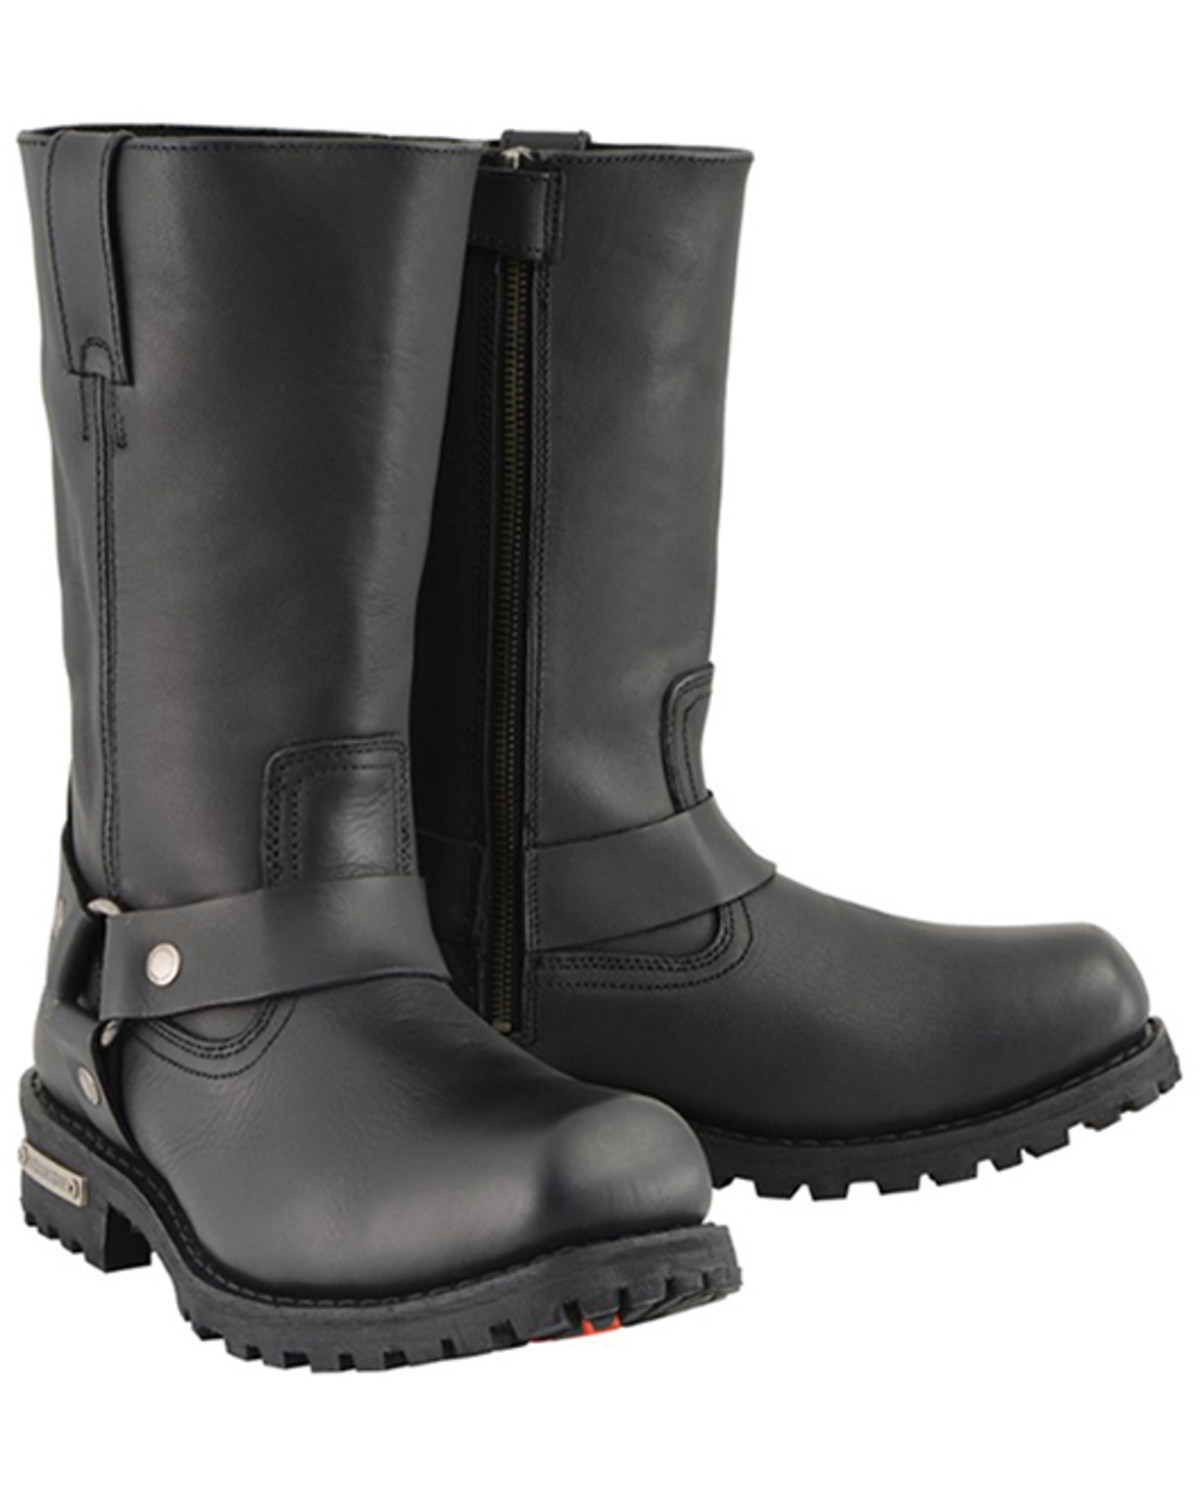 MEN/'S MOTORCYCLE RIDING LONG HARNESS LEATHER 11 INCH WATERPROOF SQUARE TOE BOOT